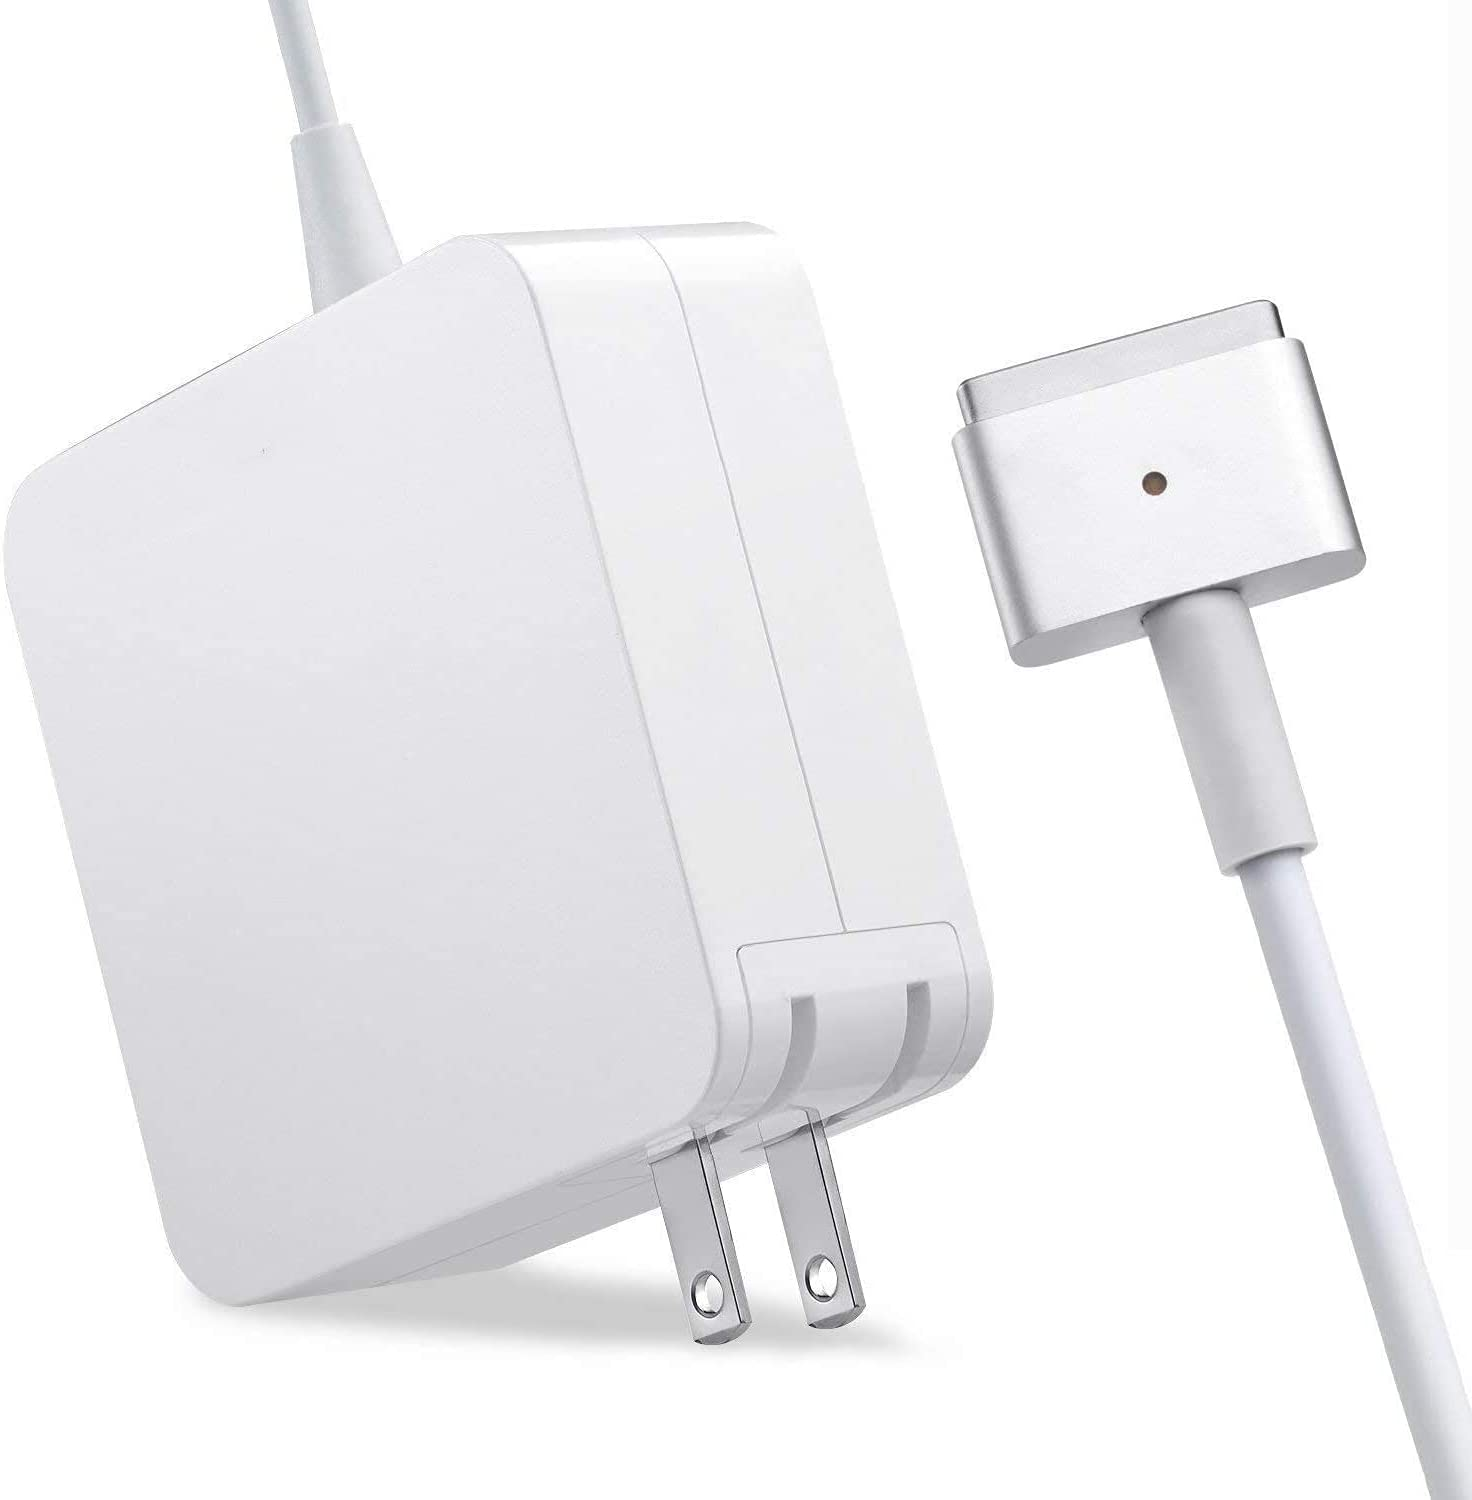 Mac Airbook Charger for Apple Computer Charger Replacement Adapter 45W Mac Charger MagSafe 2 for Mac Book Air 11 Inch 13 Inch T Tip Magnetic 2 After Mid 2012-2016 A1435, A1436, A1465, A1466